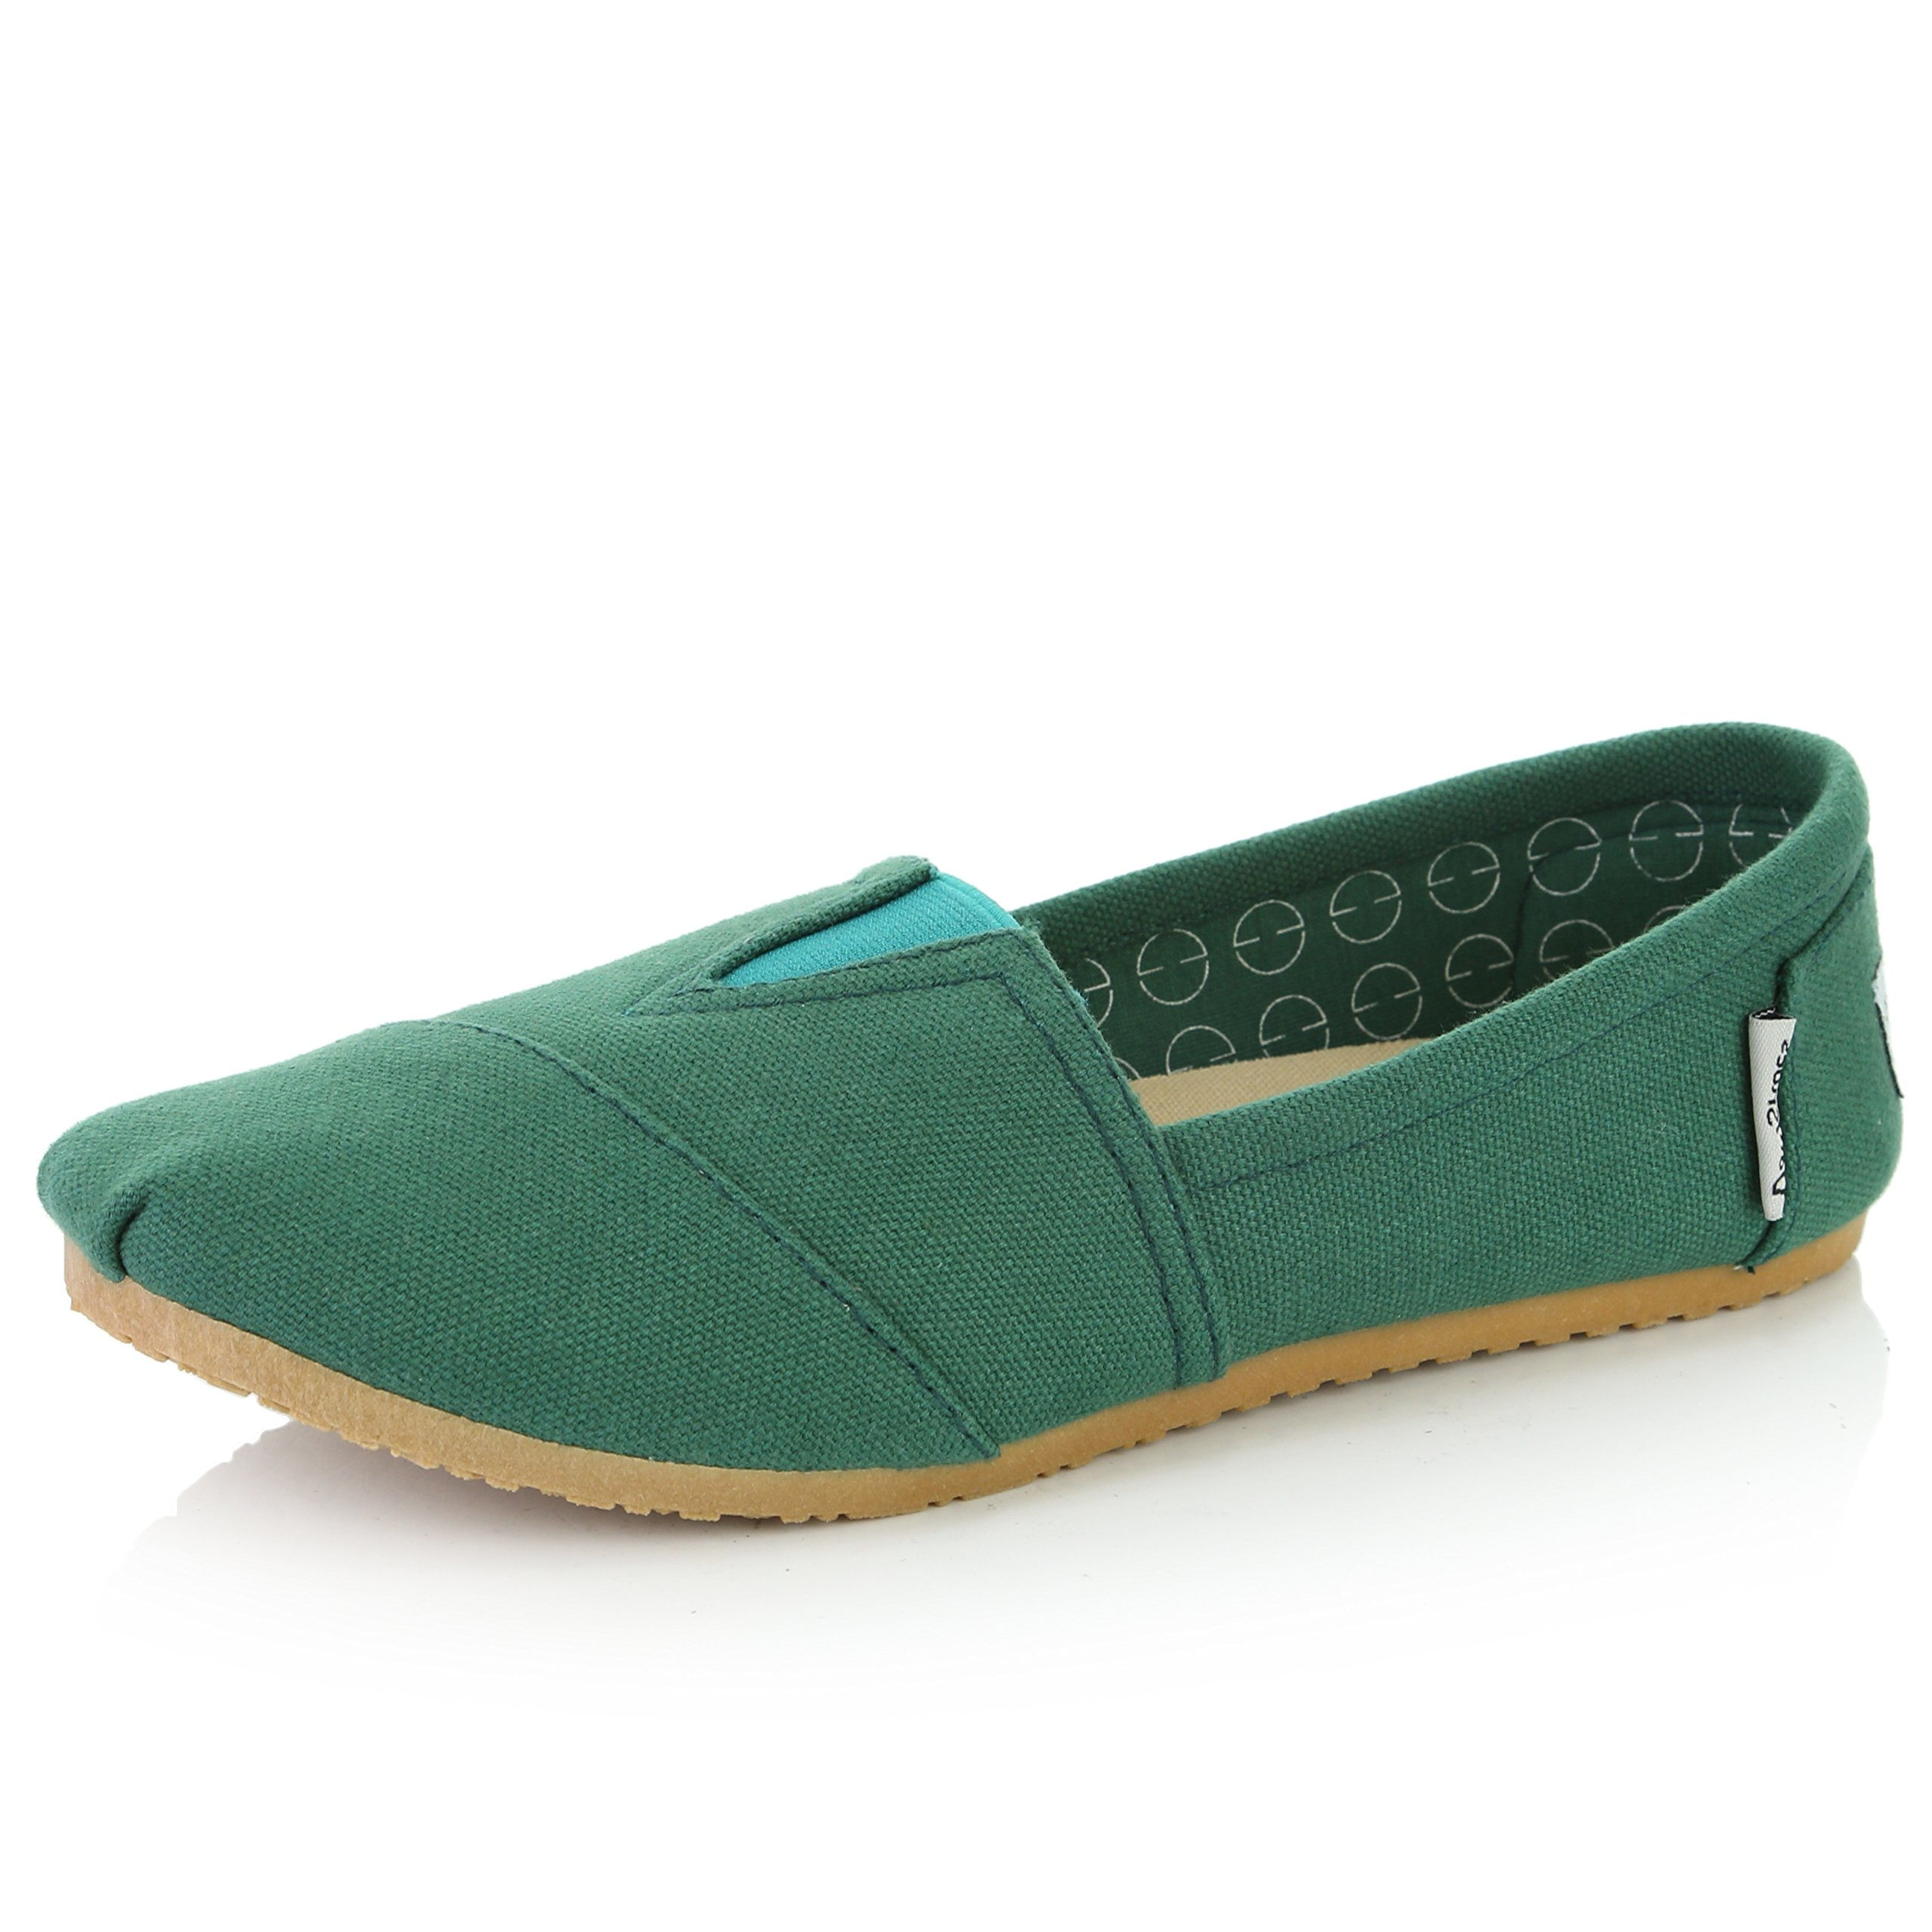 DailyShoes Classic Flat Slip-On Casual Shoes, Women's Fashion